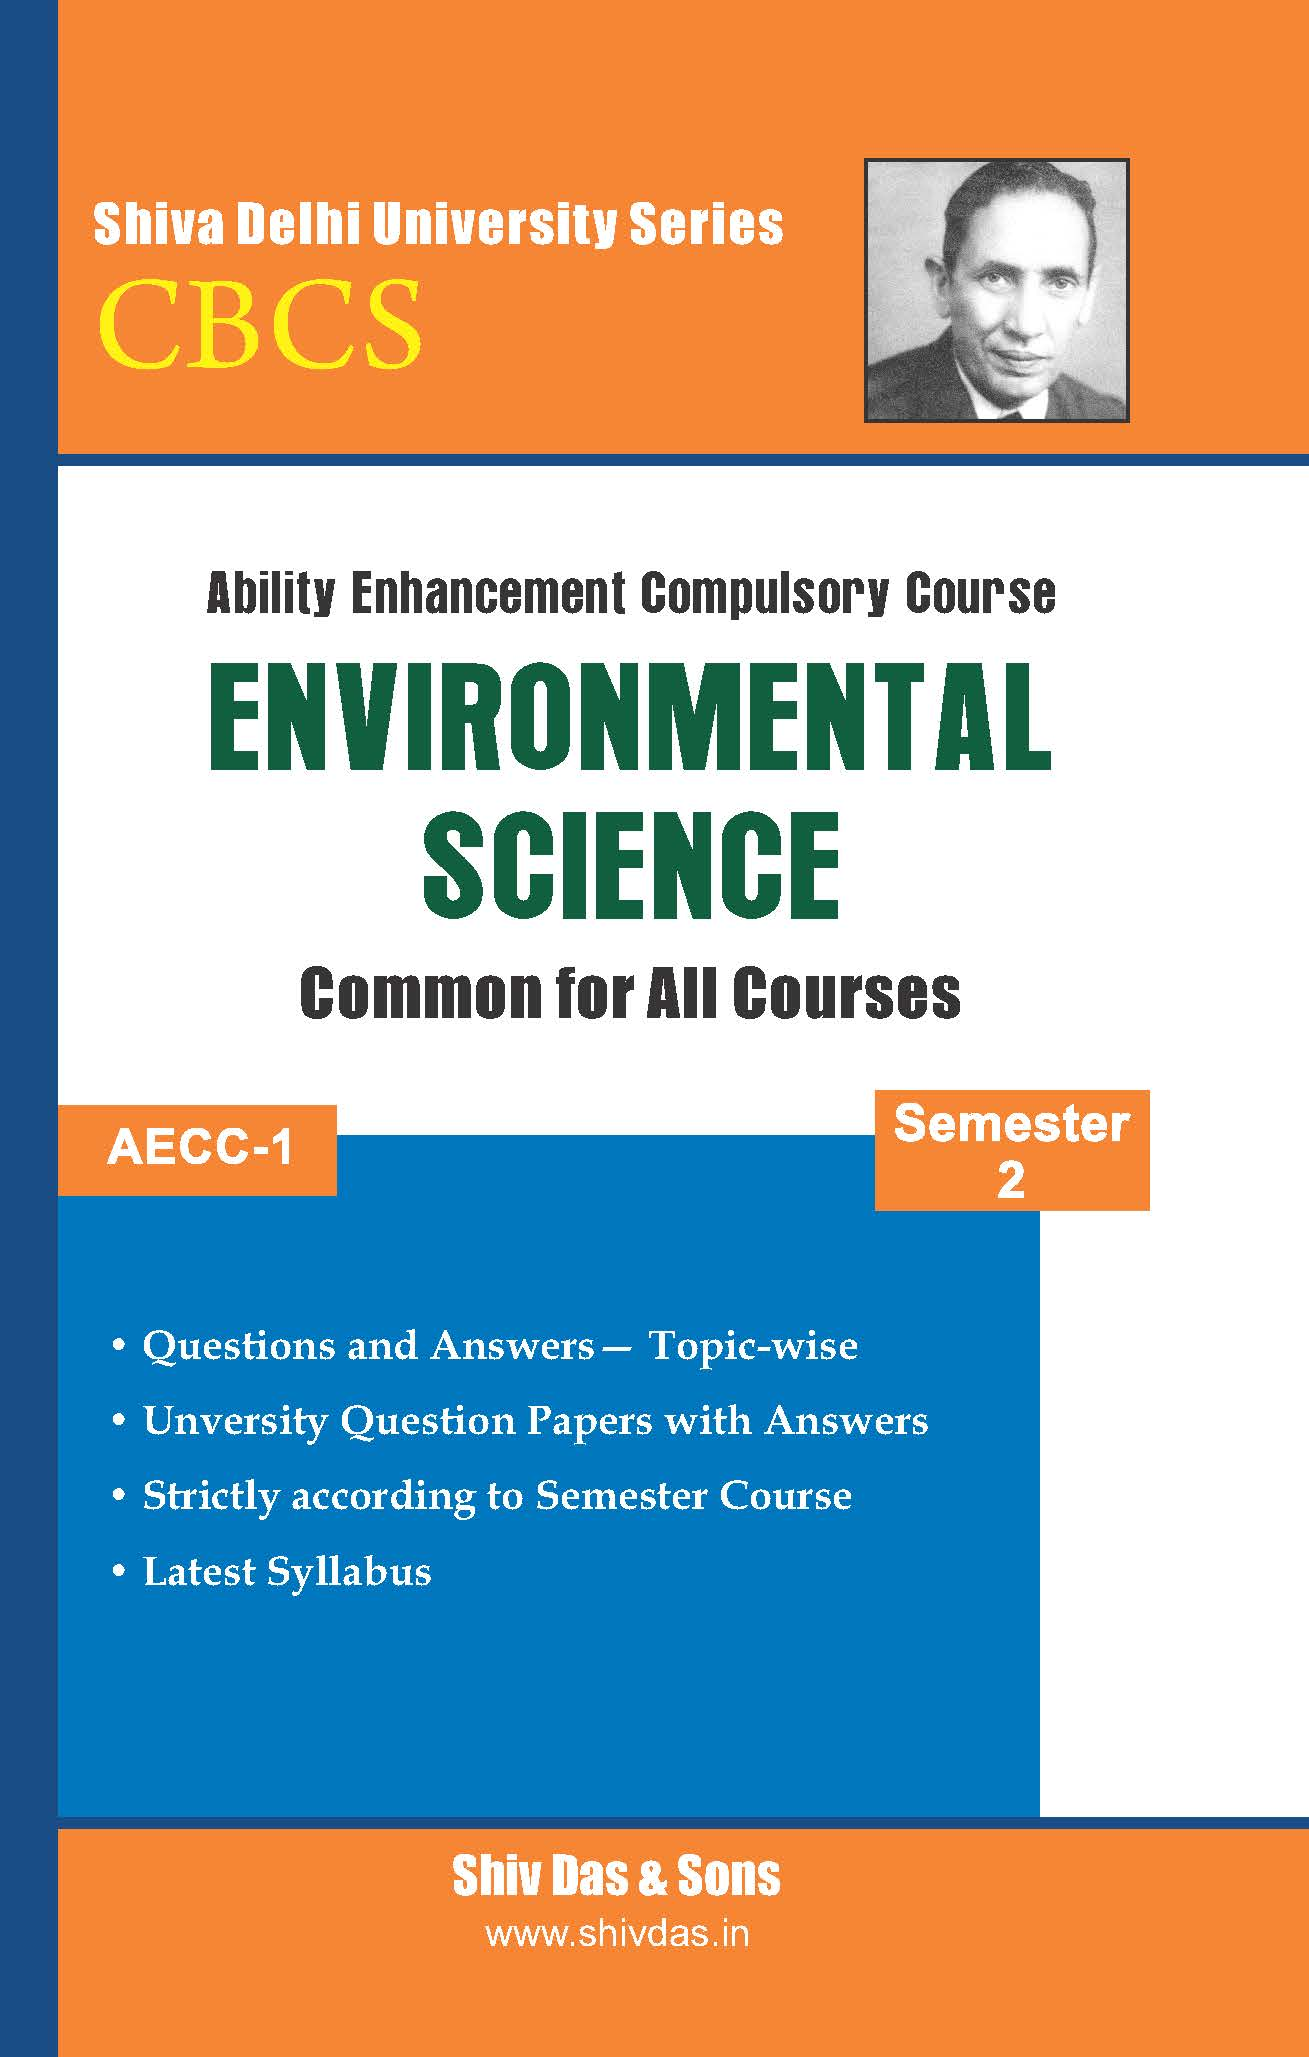 Environmental Science for B.Com Hons Semester 2